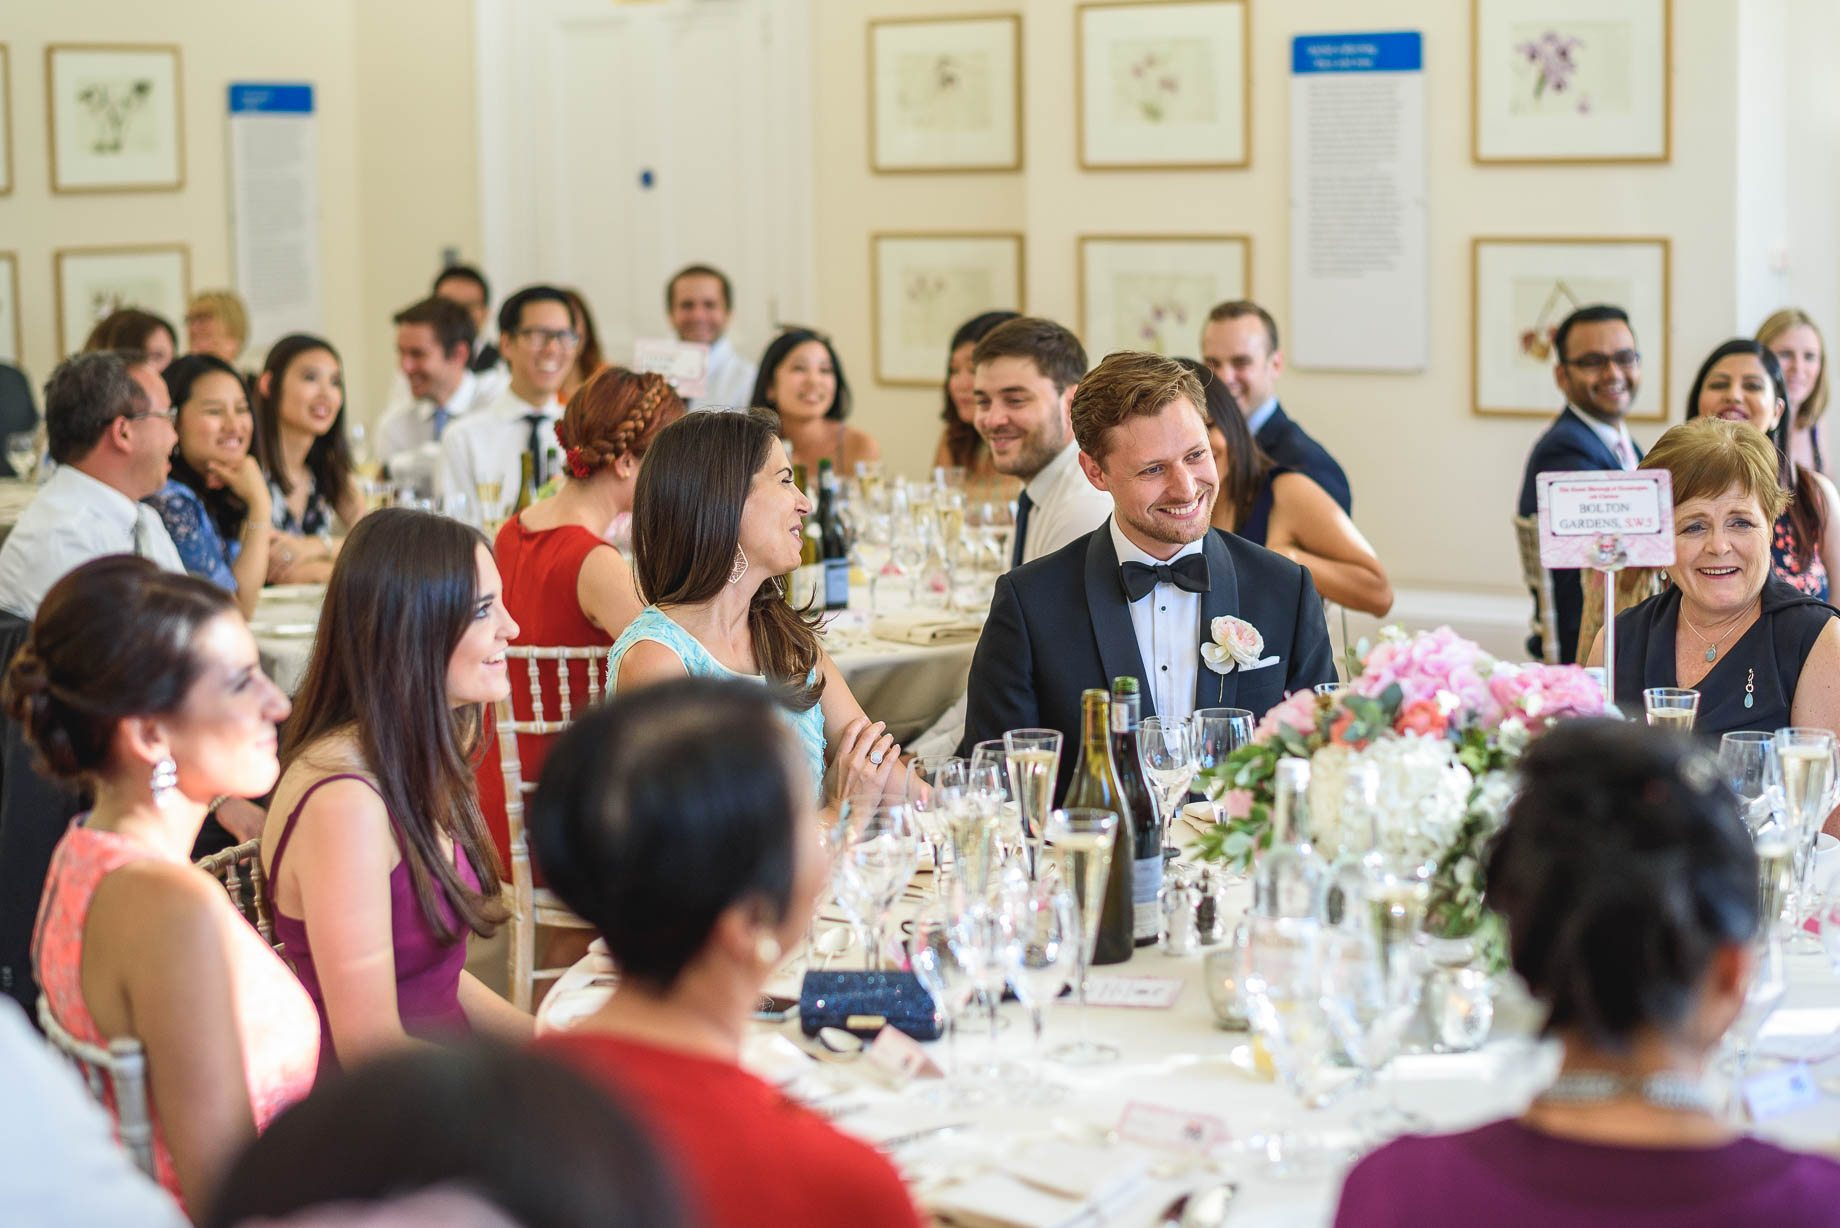 Kew Gardens wedding photography - Guy Collier Photography - Gloria and Frederik (115 of 173)